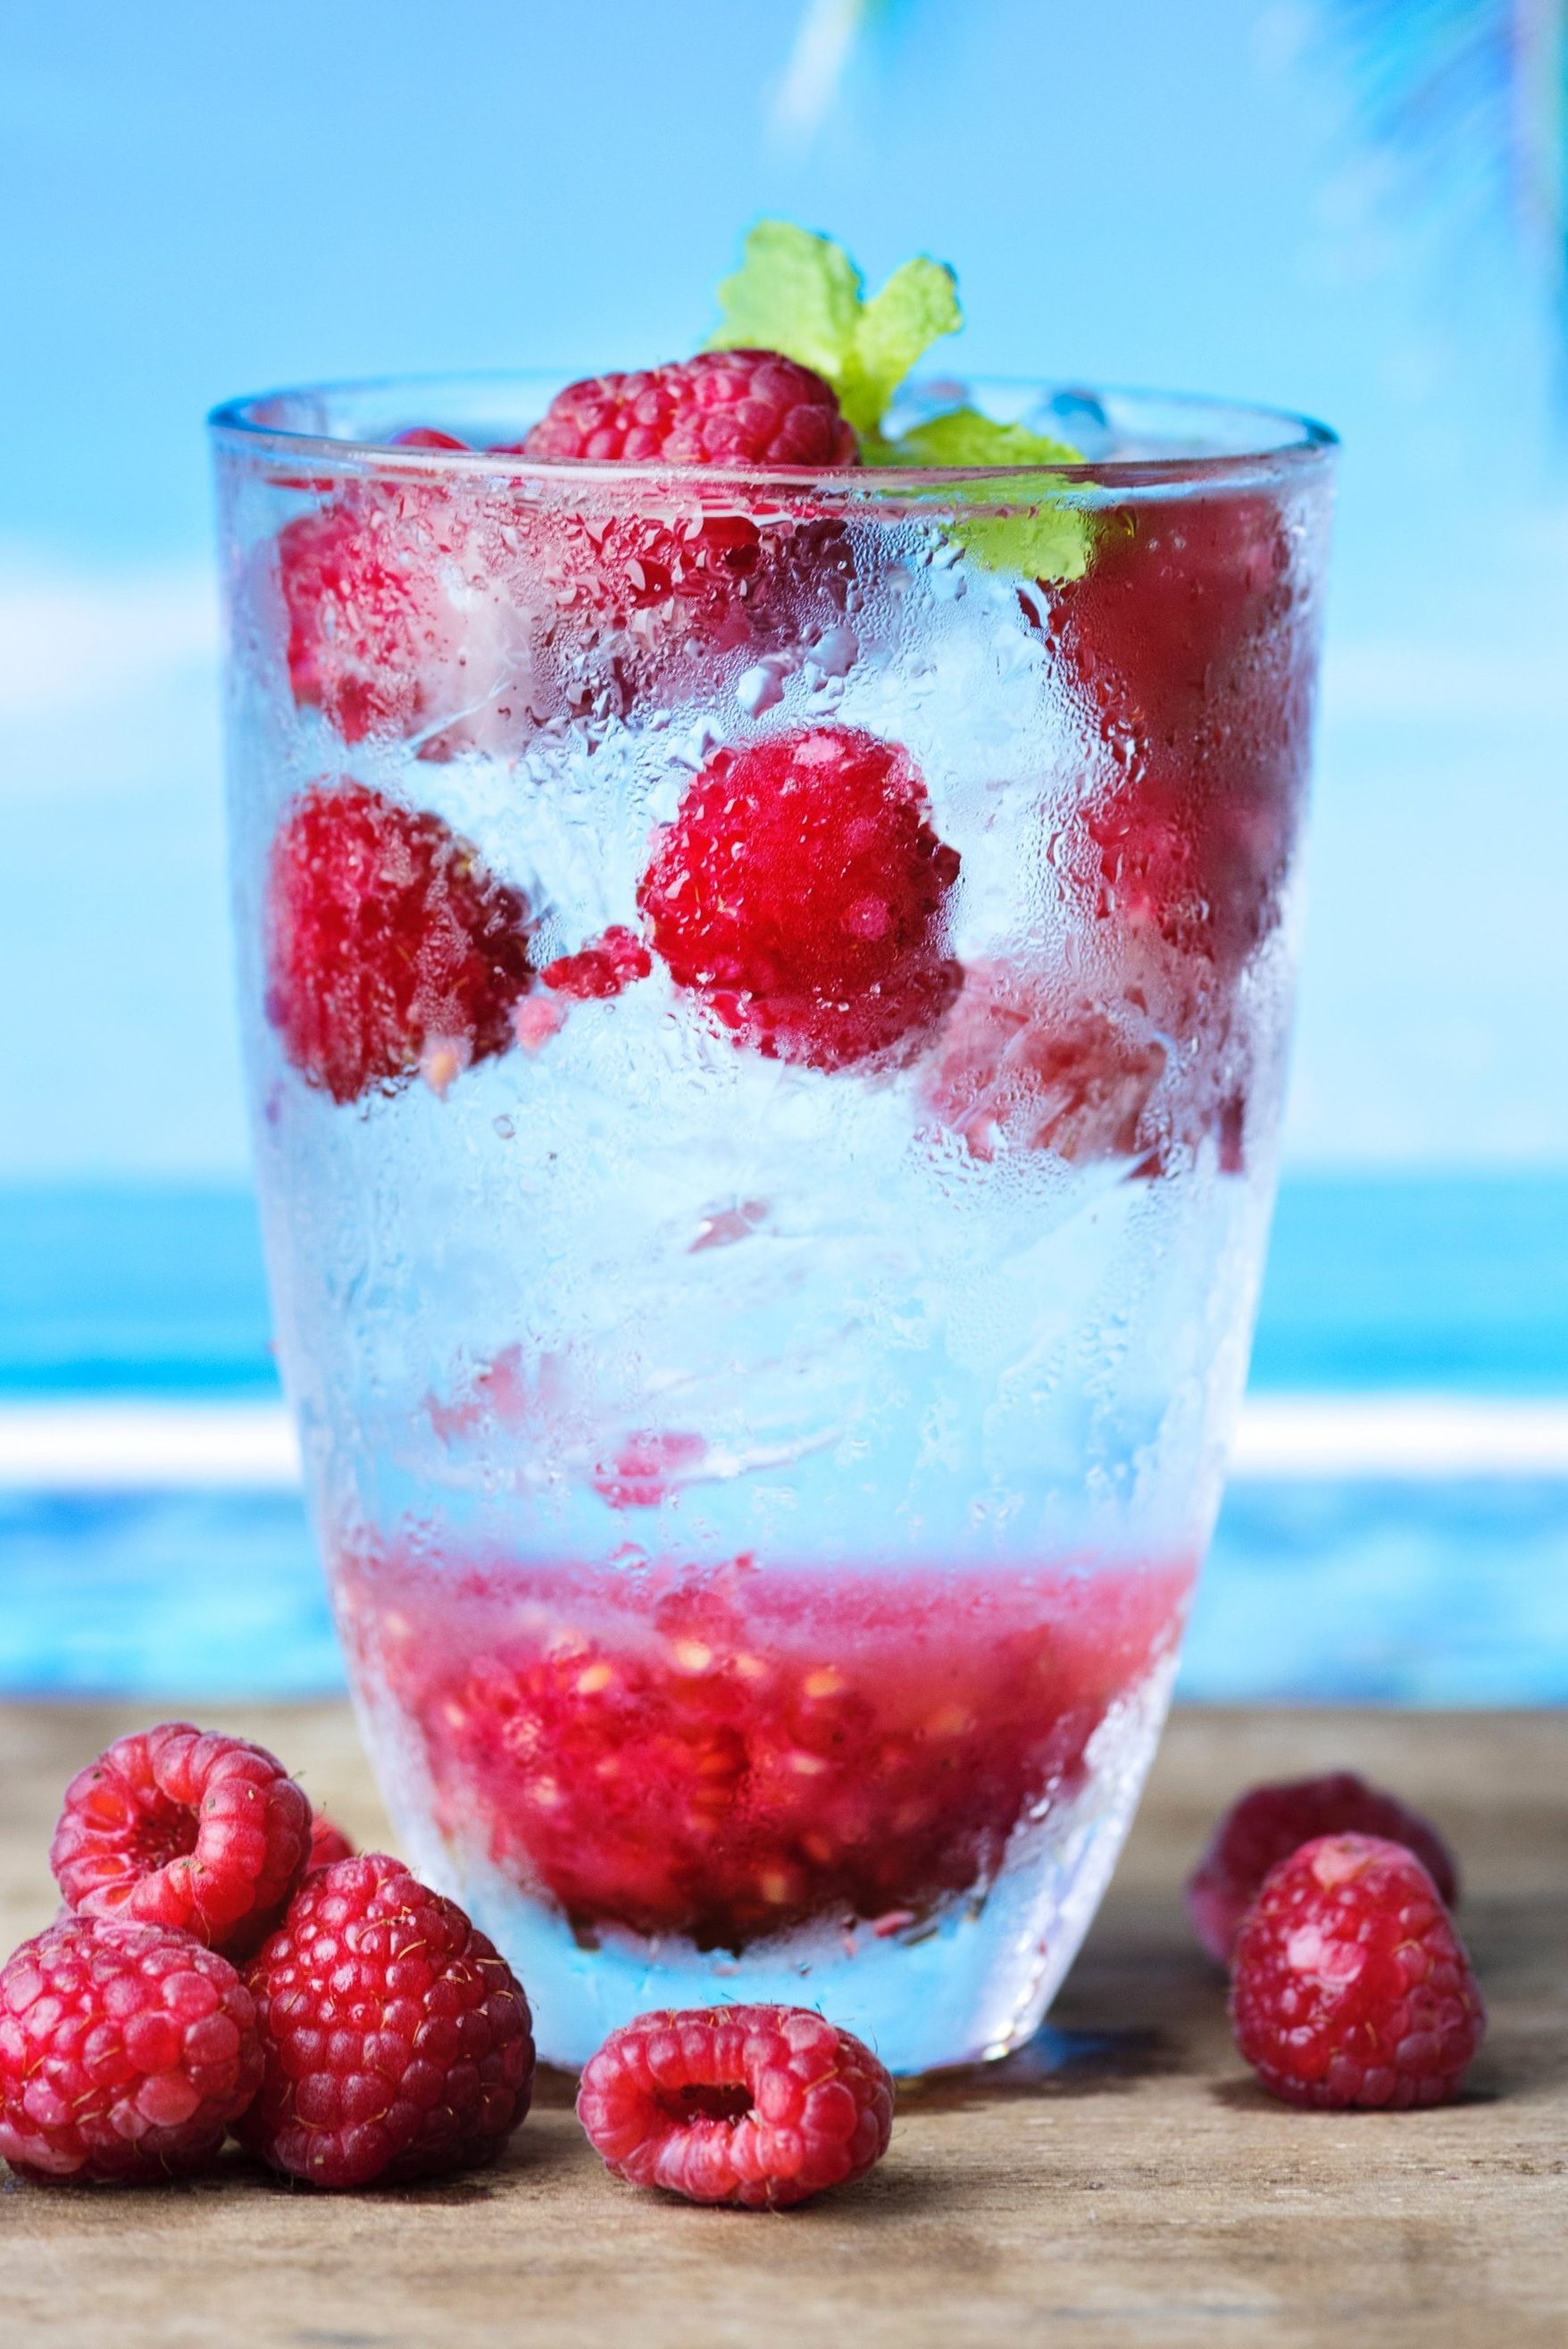 antioxidant-beach-berry-1229360.jpg